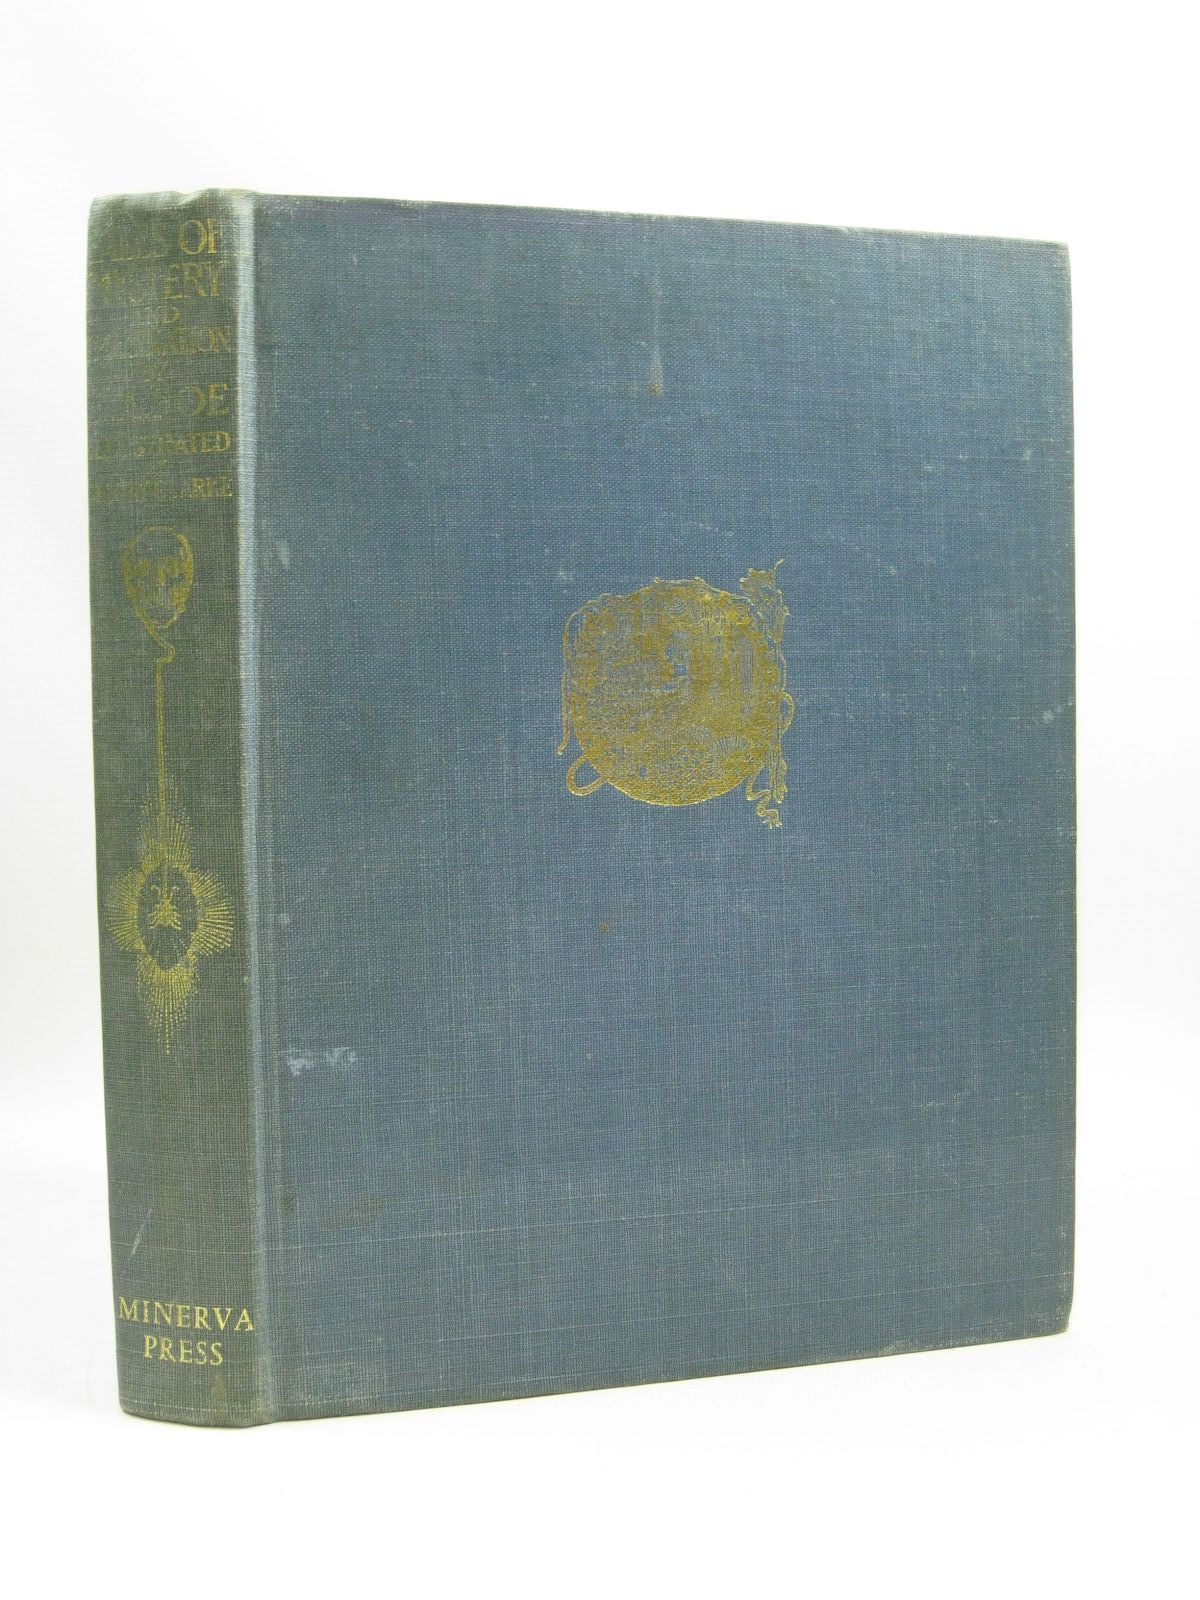 tales of mystery imagination by edgar allan poe featured books 18 00 photo of tales of mystery and imagination